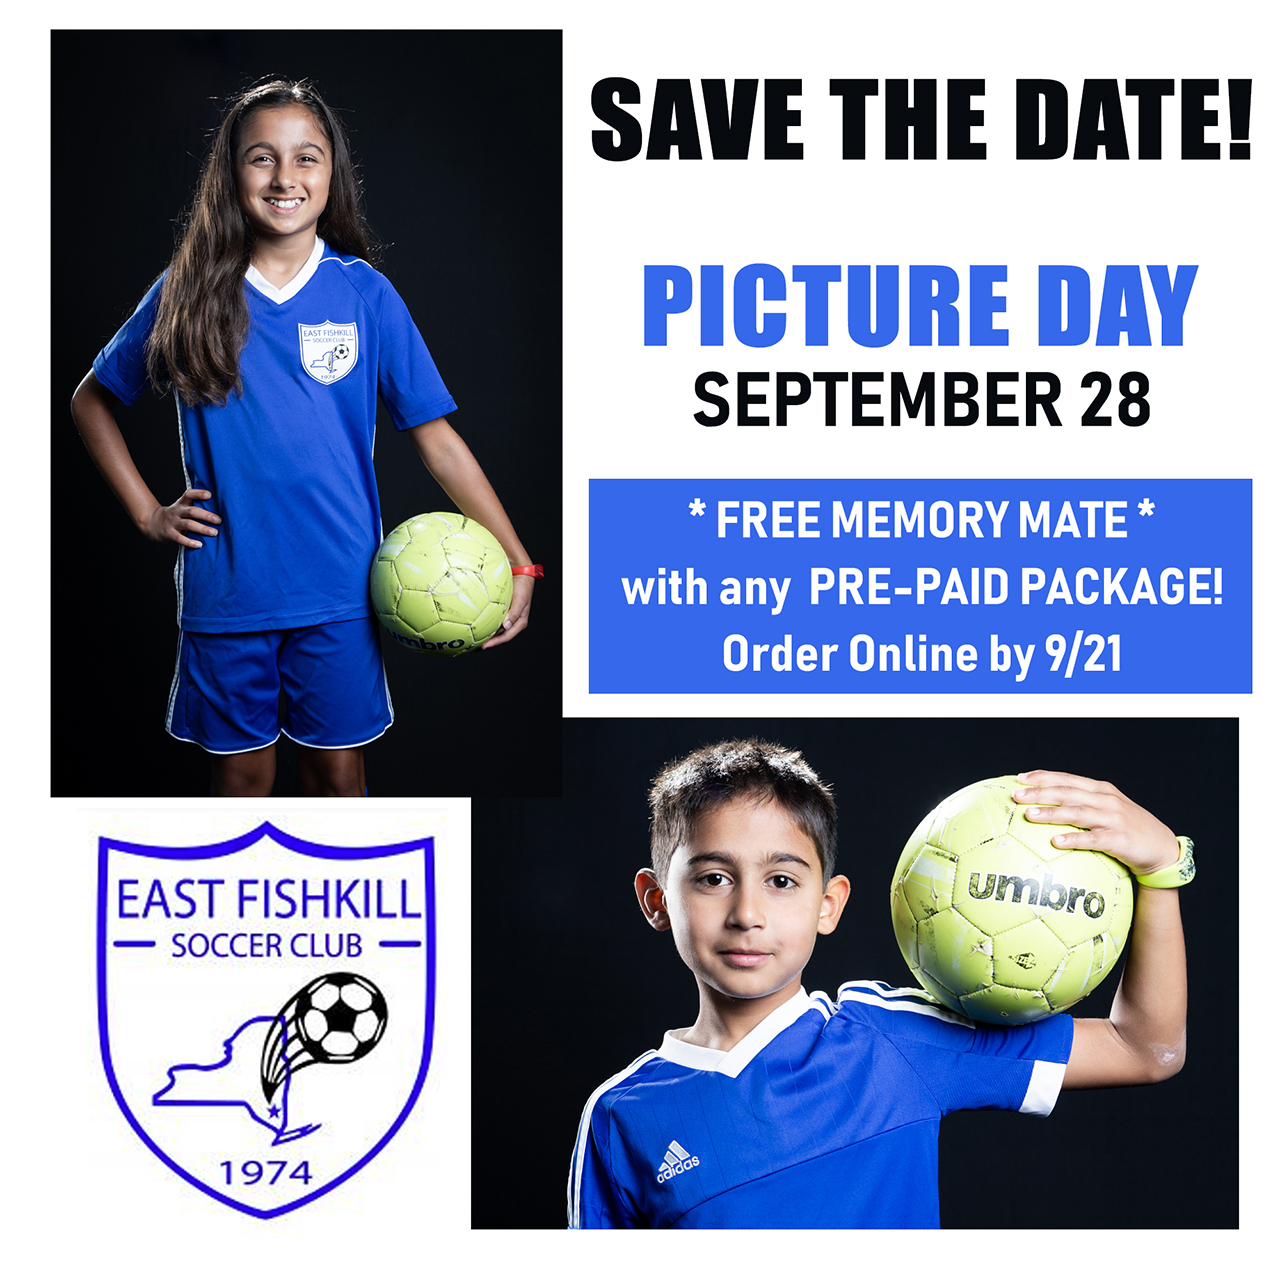 Photo Day Save The Date 2 1280